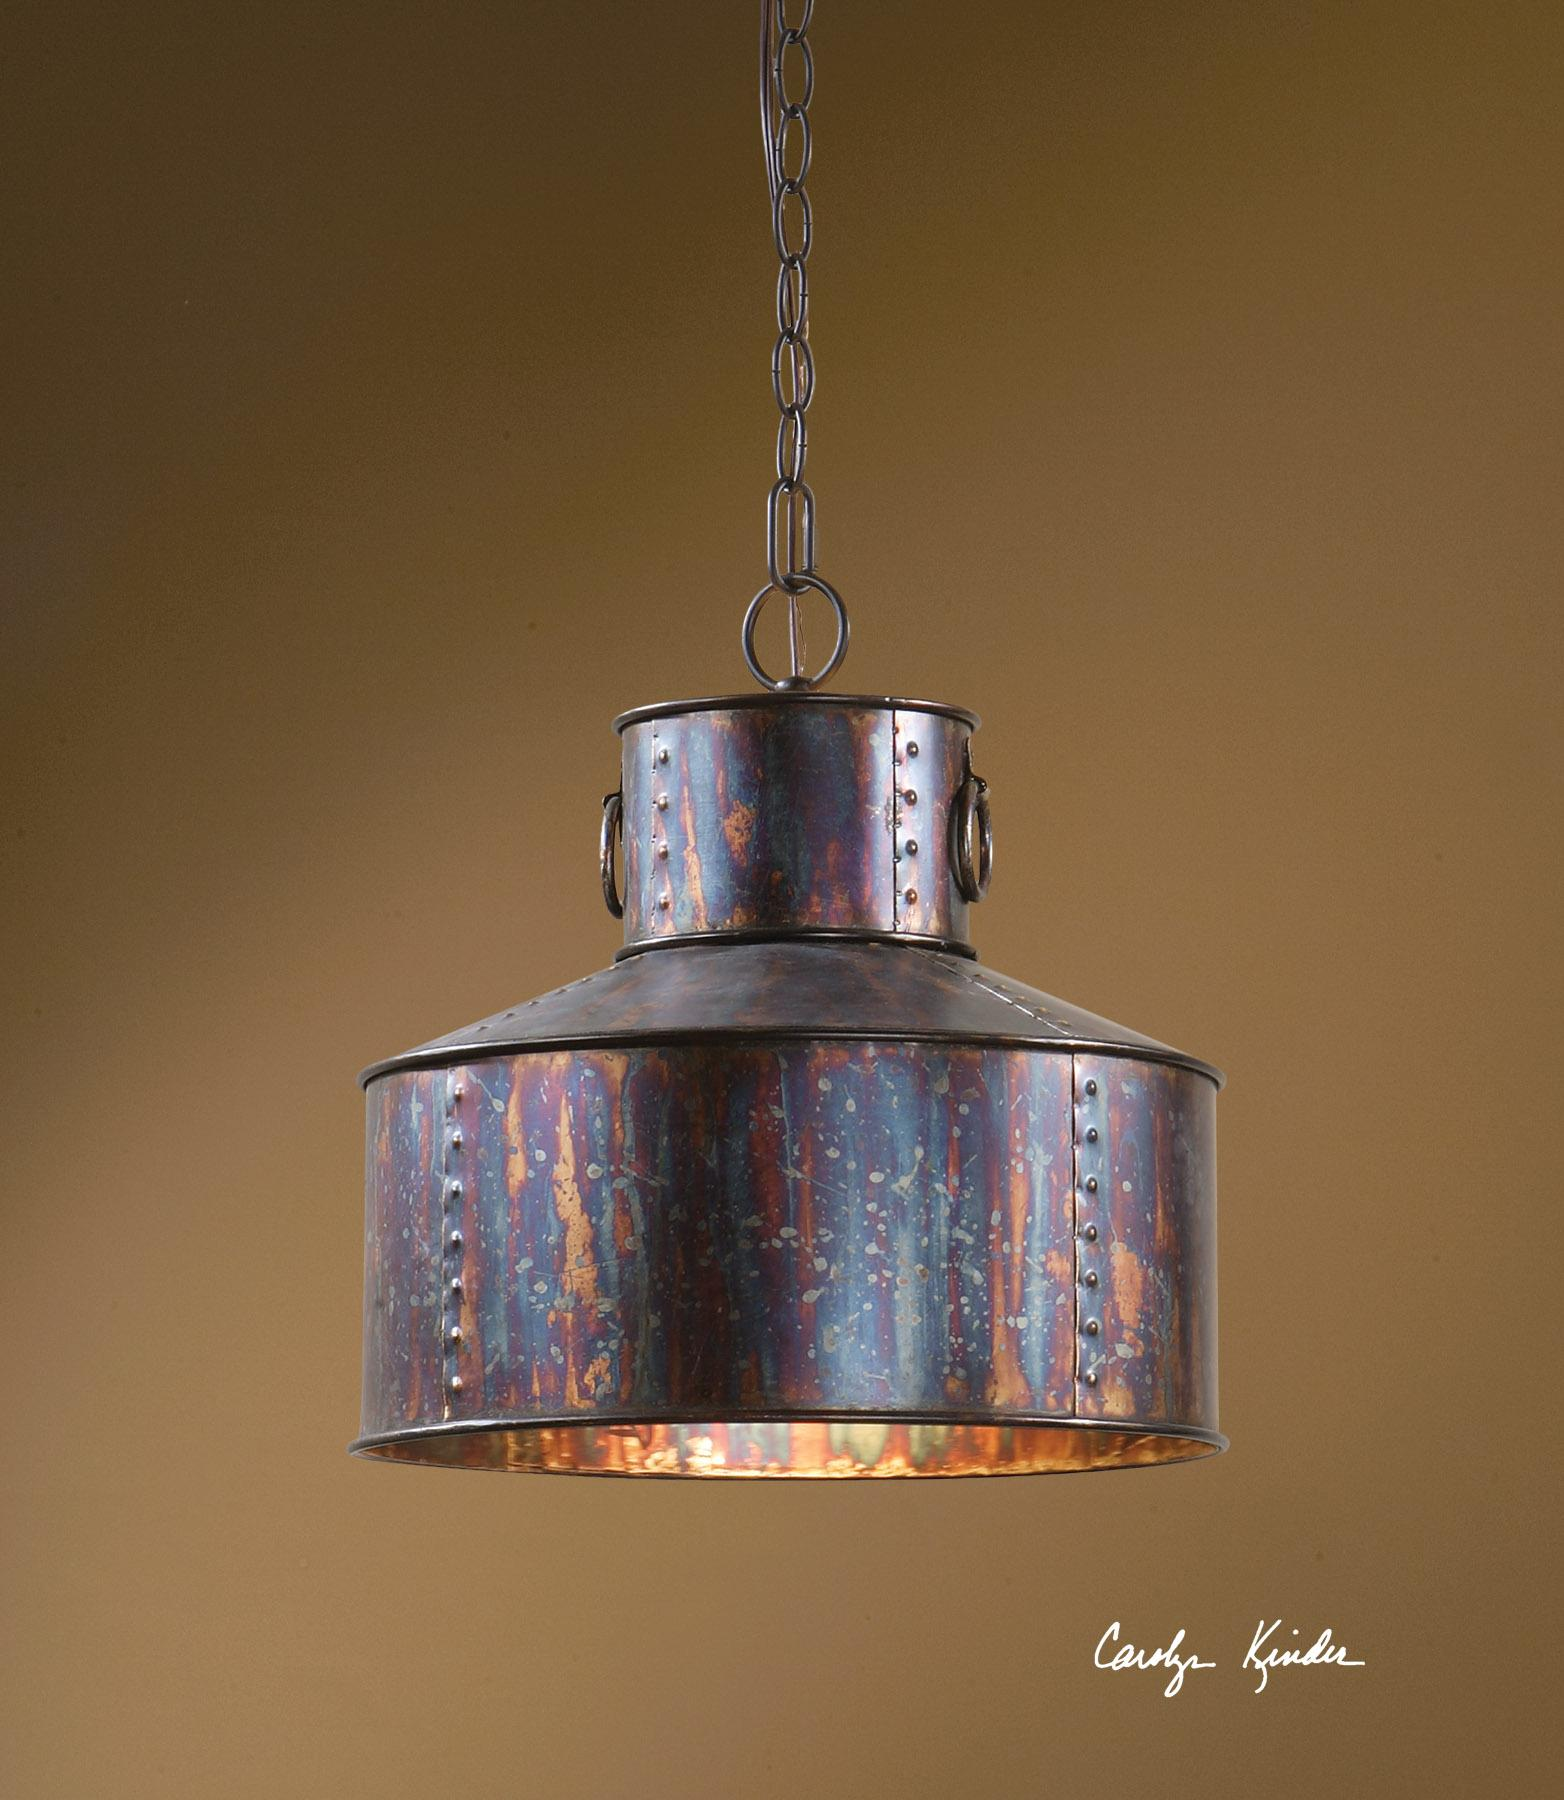 Uttermost Lighting Fixtures Giaveno 1 Light Pendant - Item Number: 21924